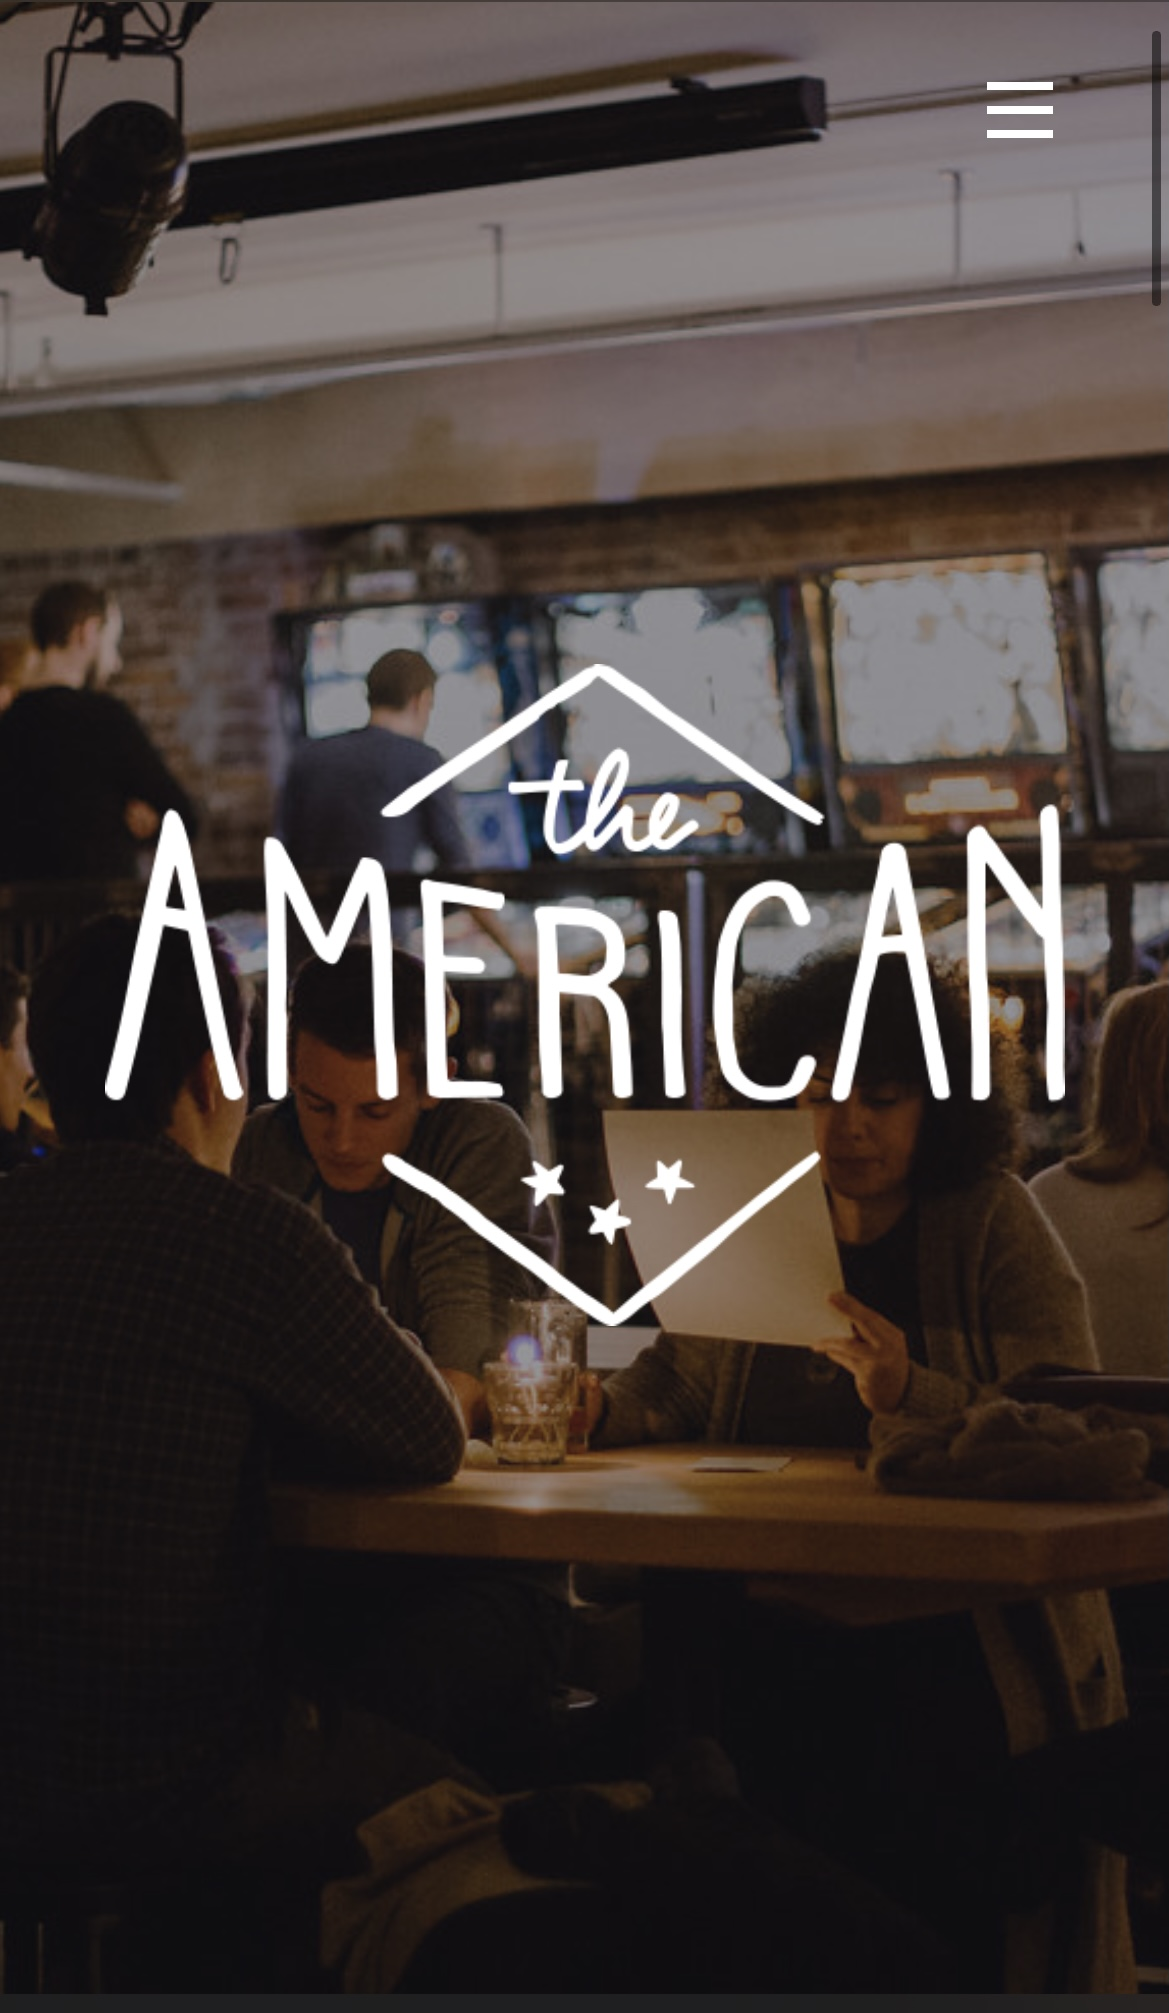 theamerican.ca Home Page (tablet view)